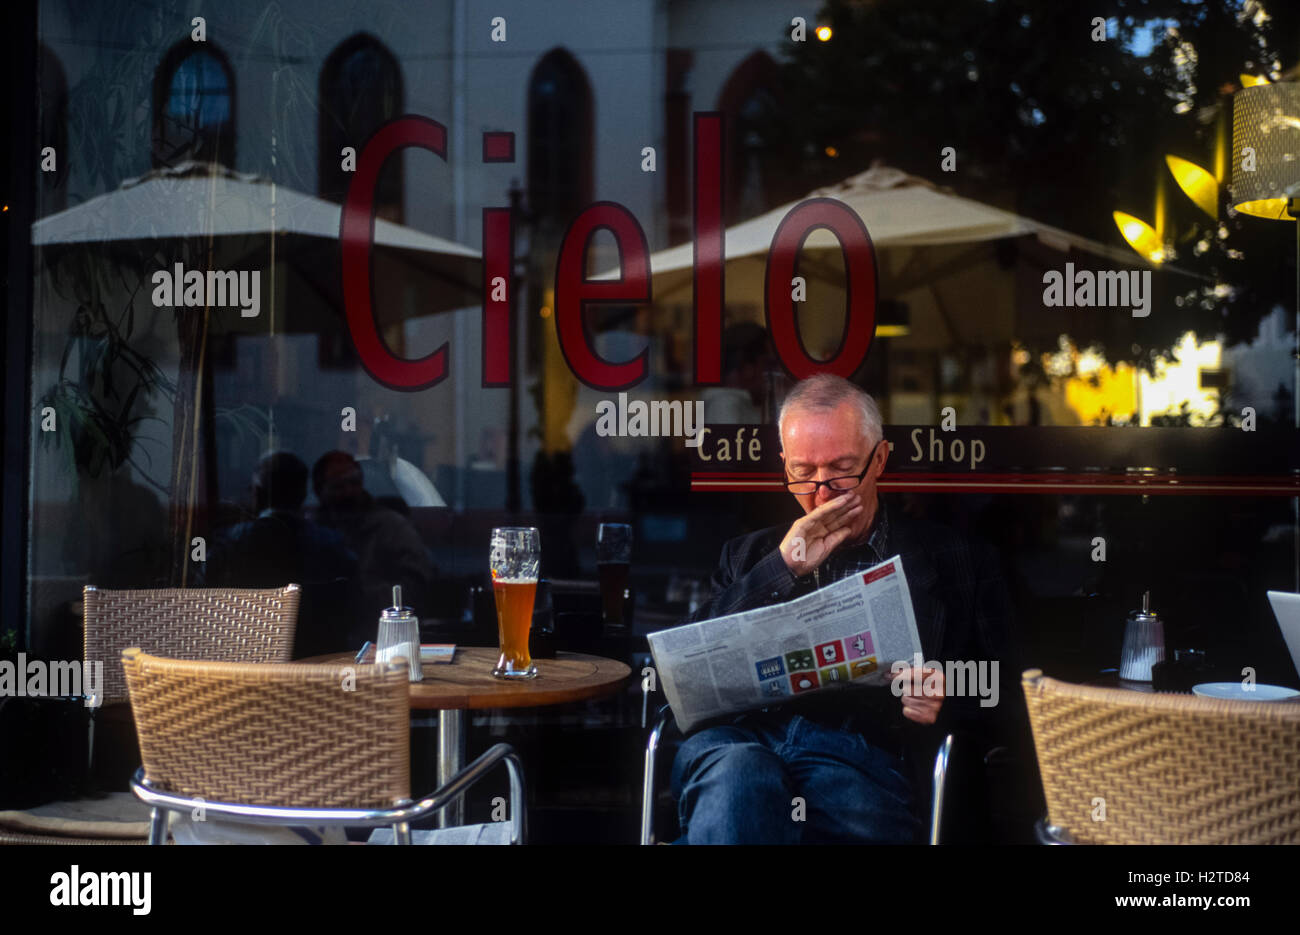 Man yawning outside a cafe Durlach Karlsruhe Baden-Württemberg Germany - Stock Image